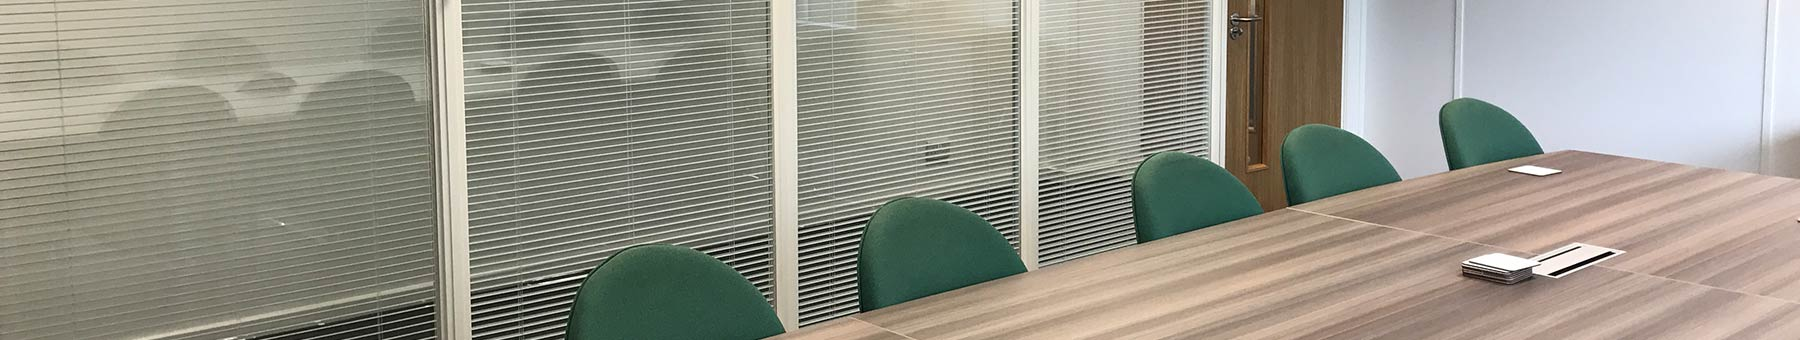 Glass Office Partitioning in Bristol for ECOBAT